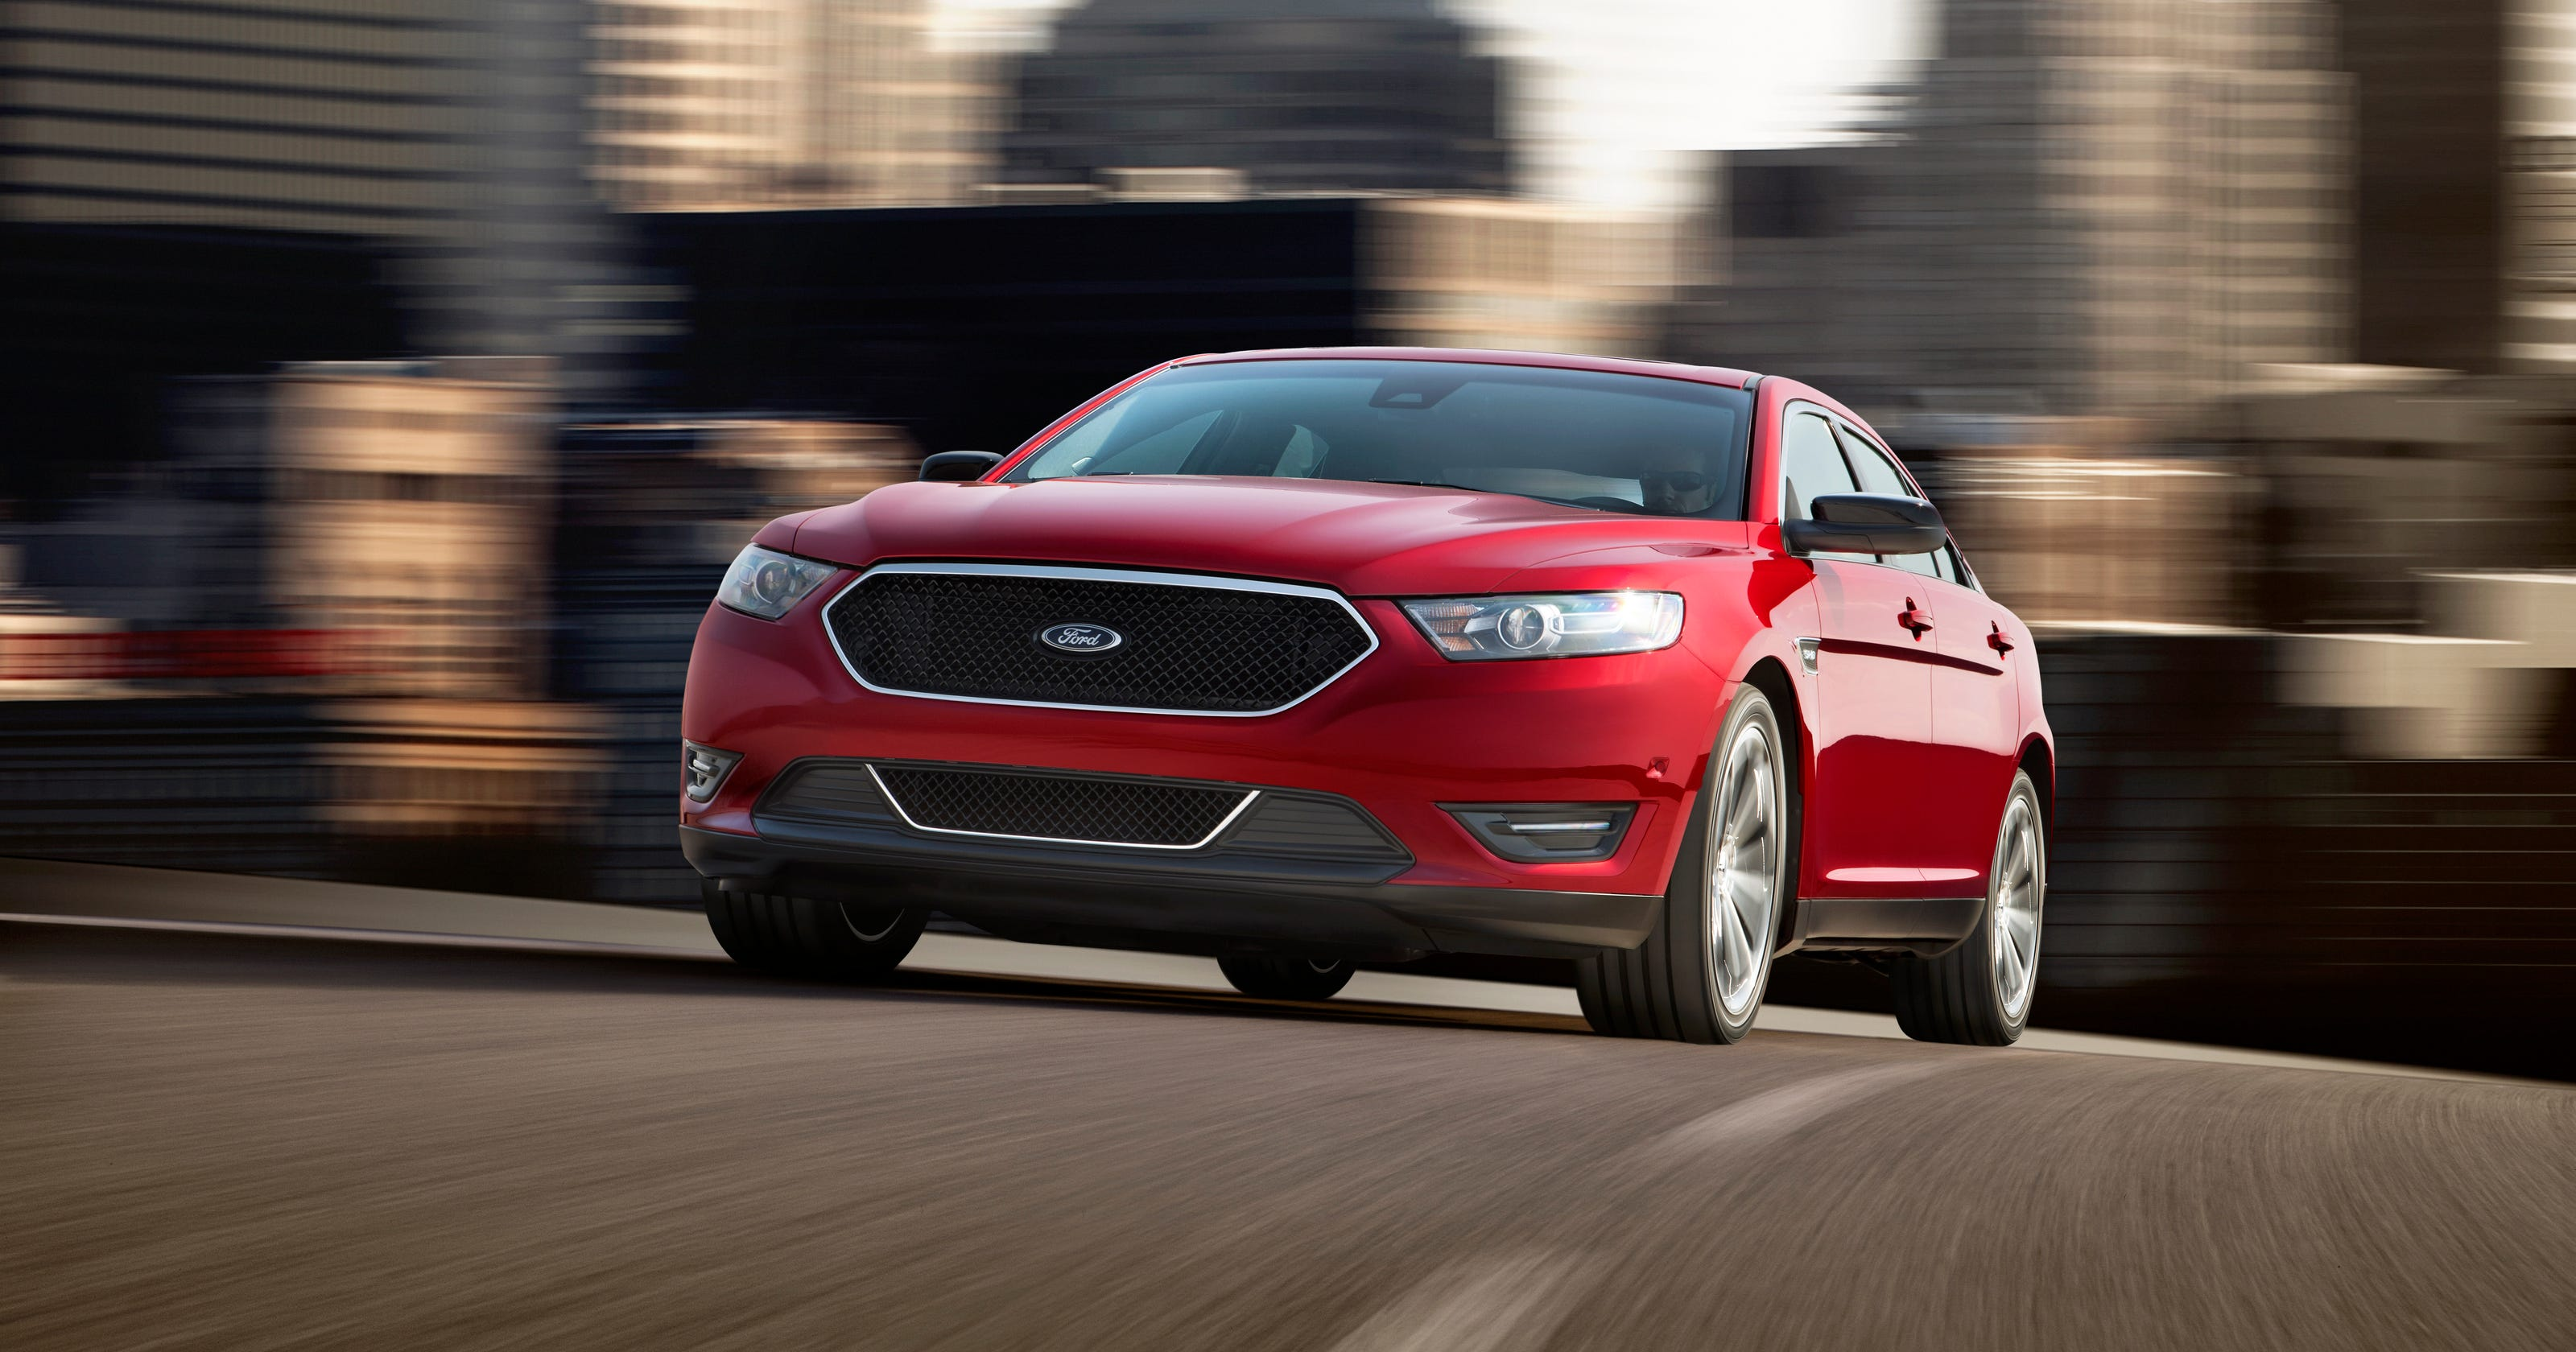 Ford Taurus, Fusion, Fiesta are gone: Buy a Chevy instead?